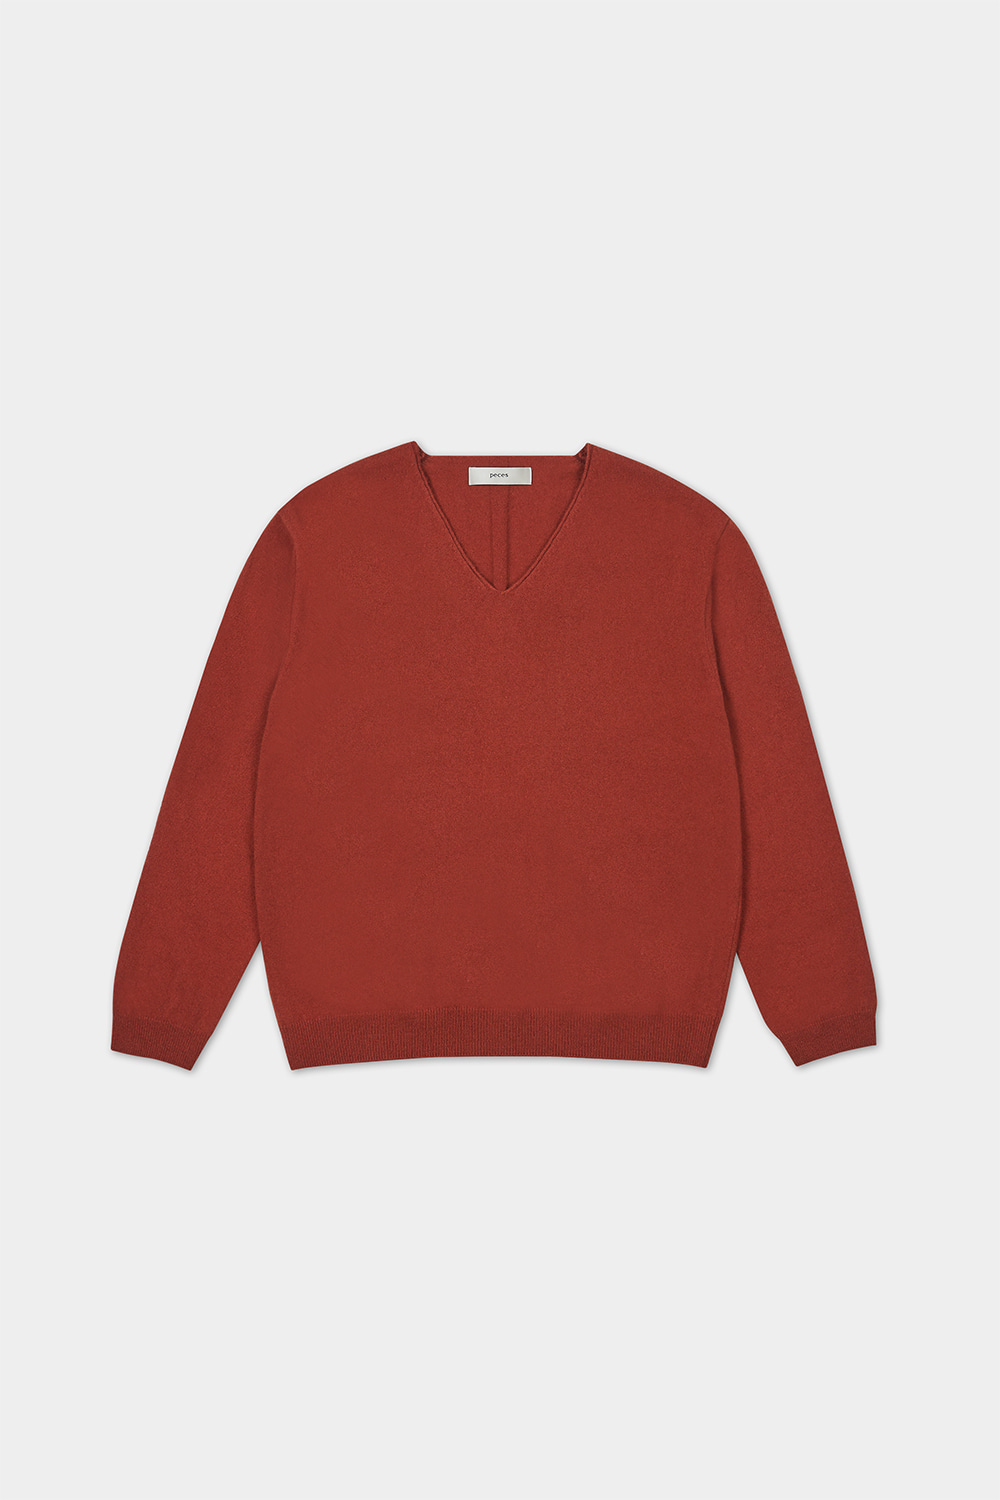 20FW CASHMERE BLENDED KNIT (RUST BROWN) - 5COLOR